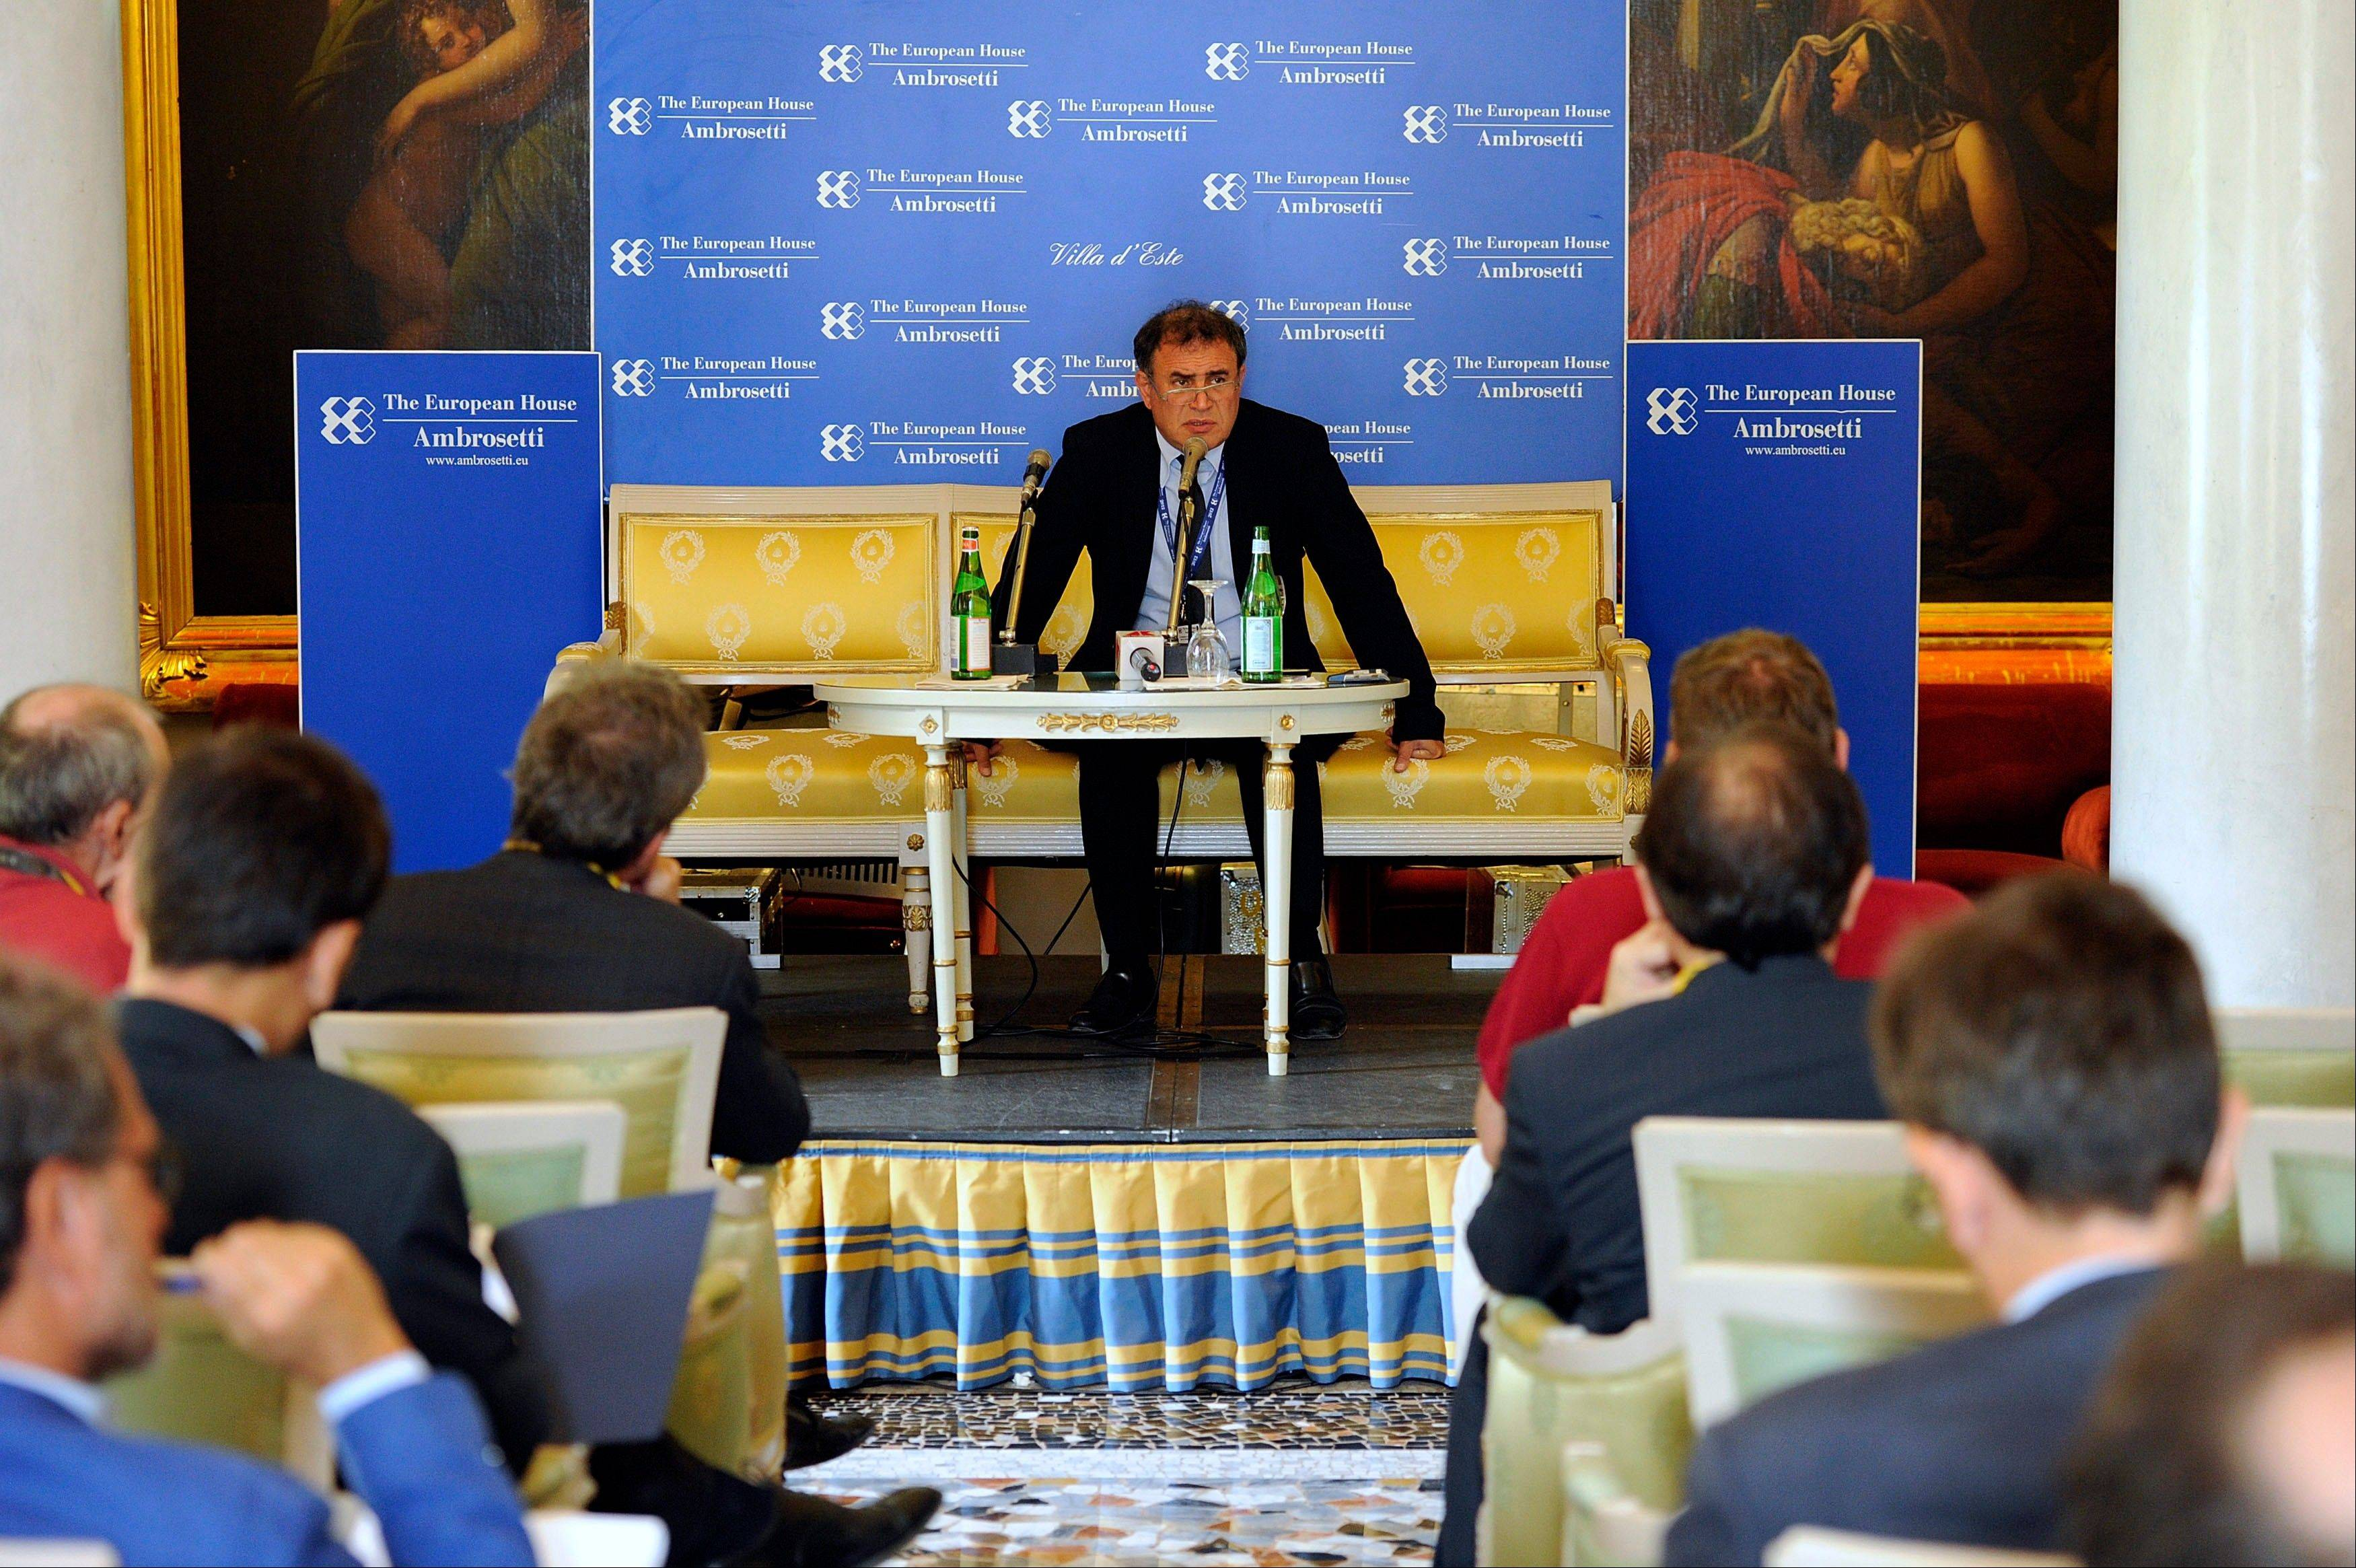 U.S. economist Nouriel Roubini, center, speaks during a meeting Friday on the world economy in Cernobbio, Italy.